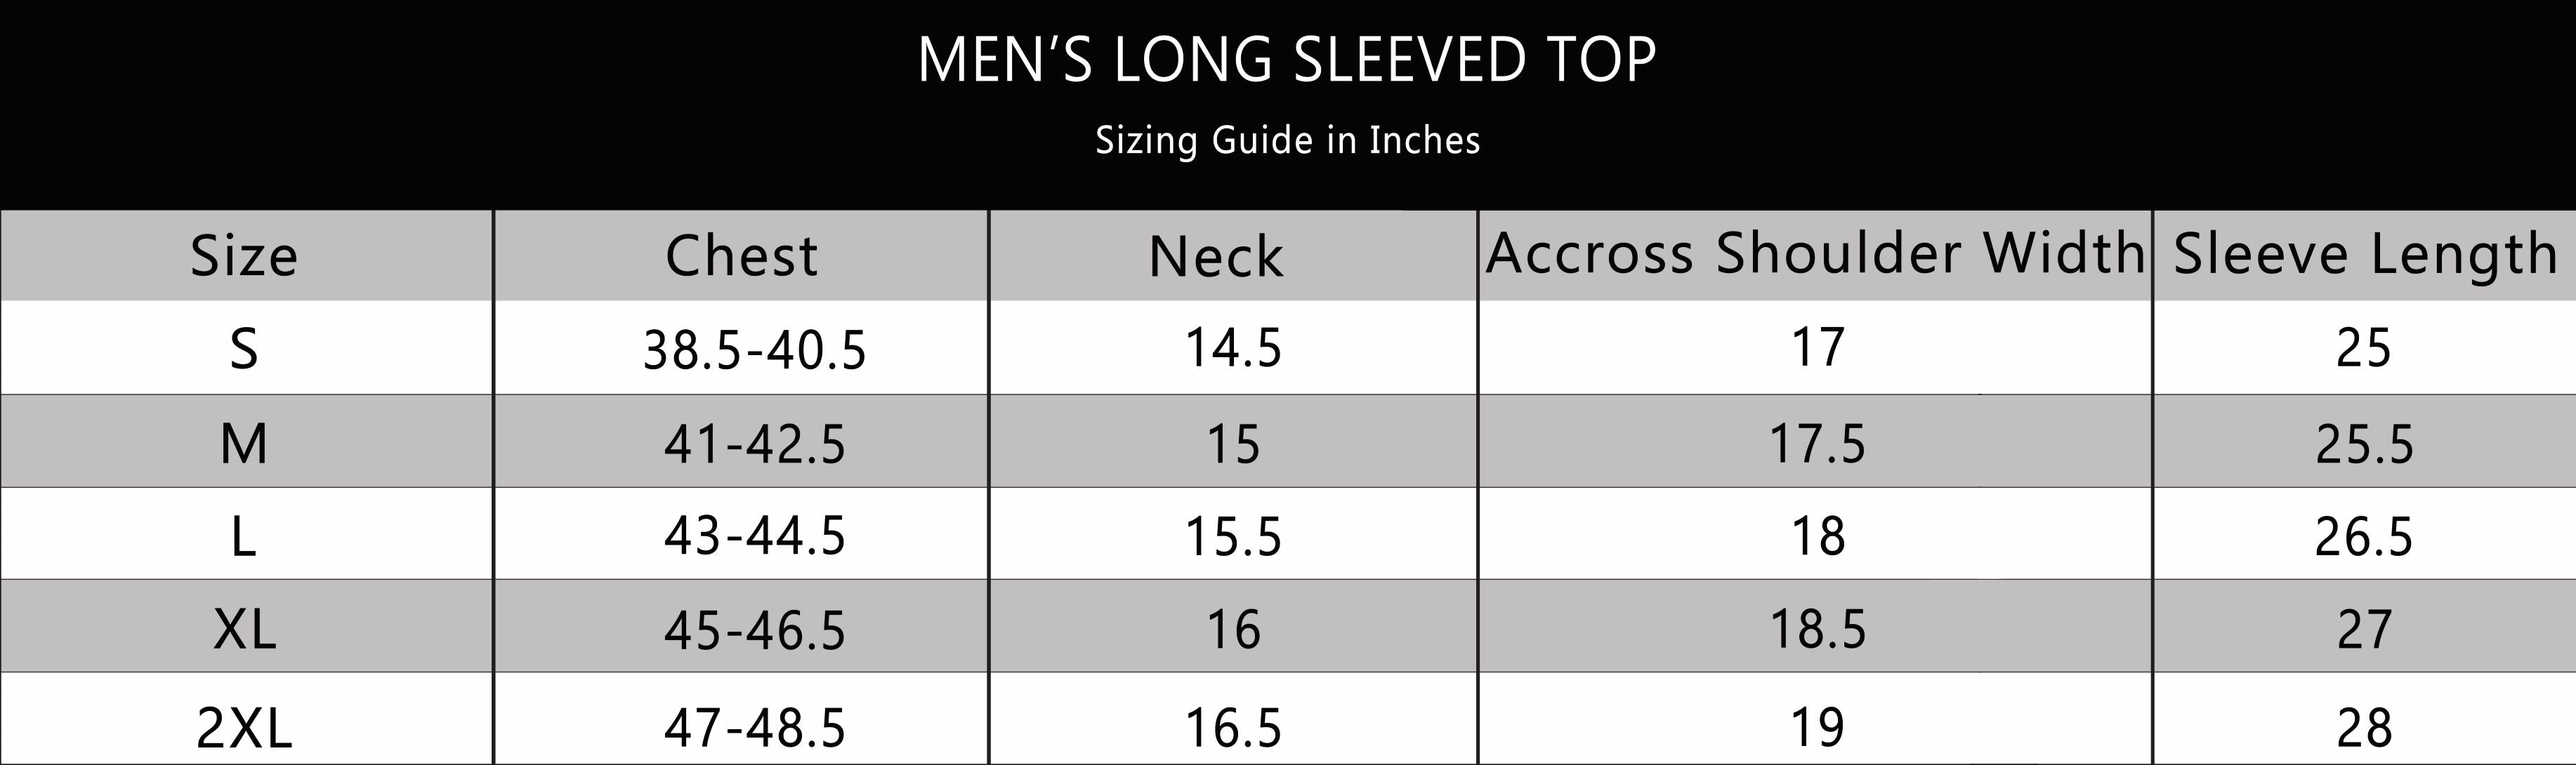 BOTTOMS OUT LONG SLEEVED TOPS SIZE CHART